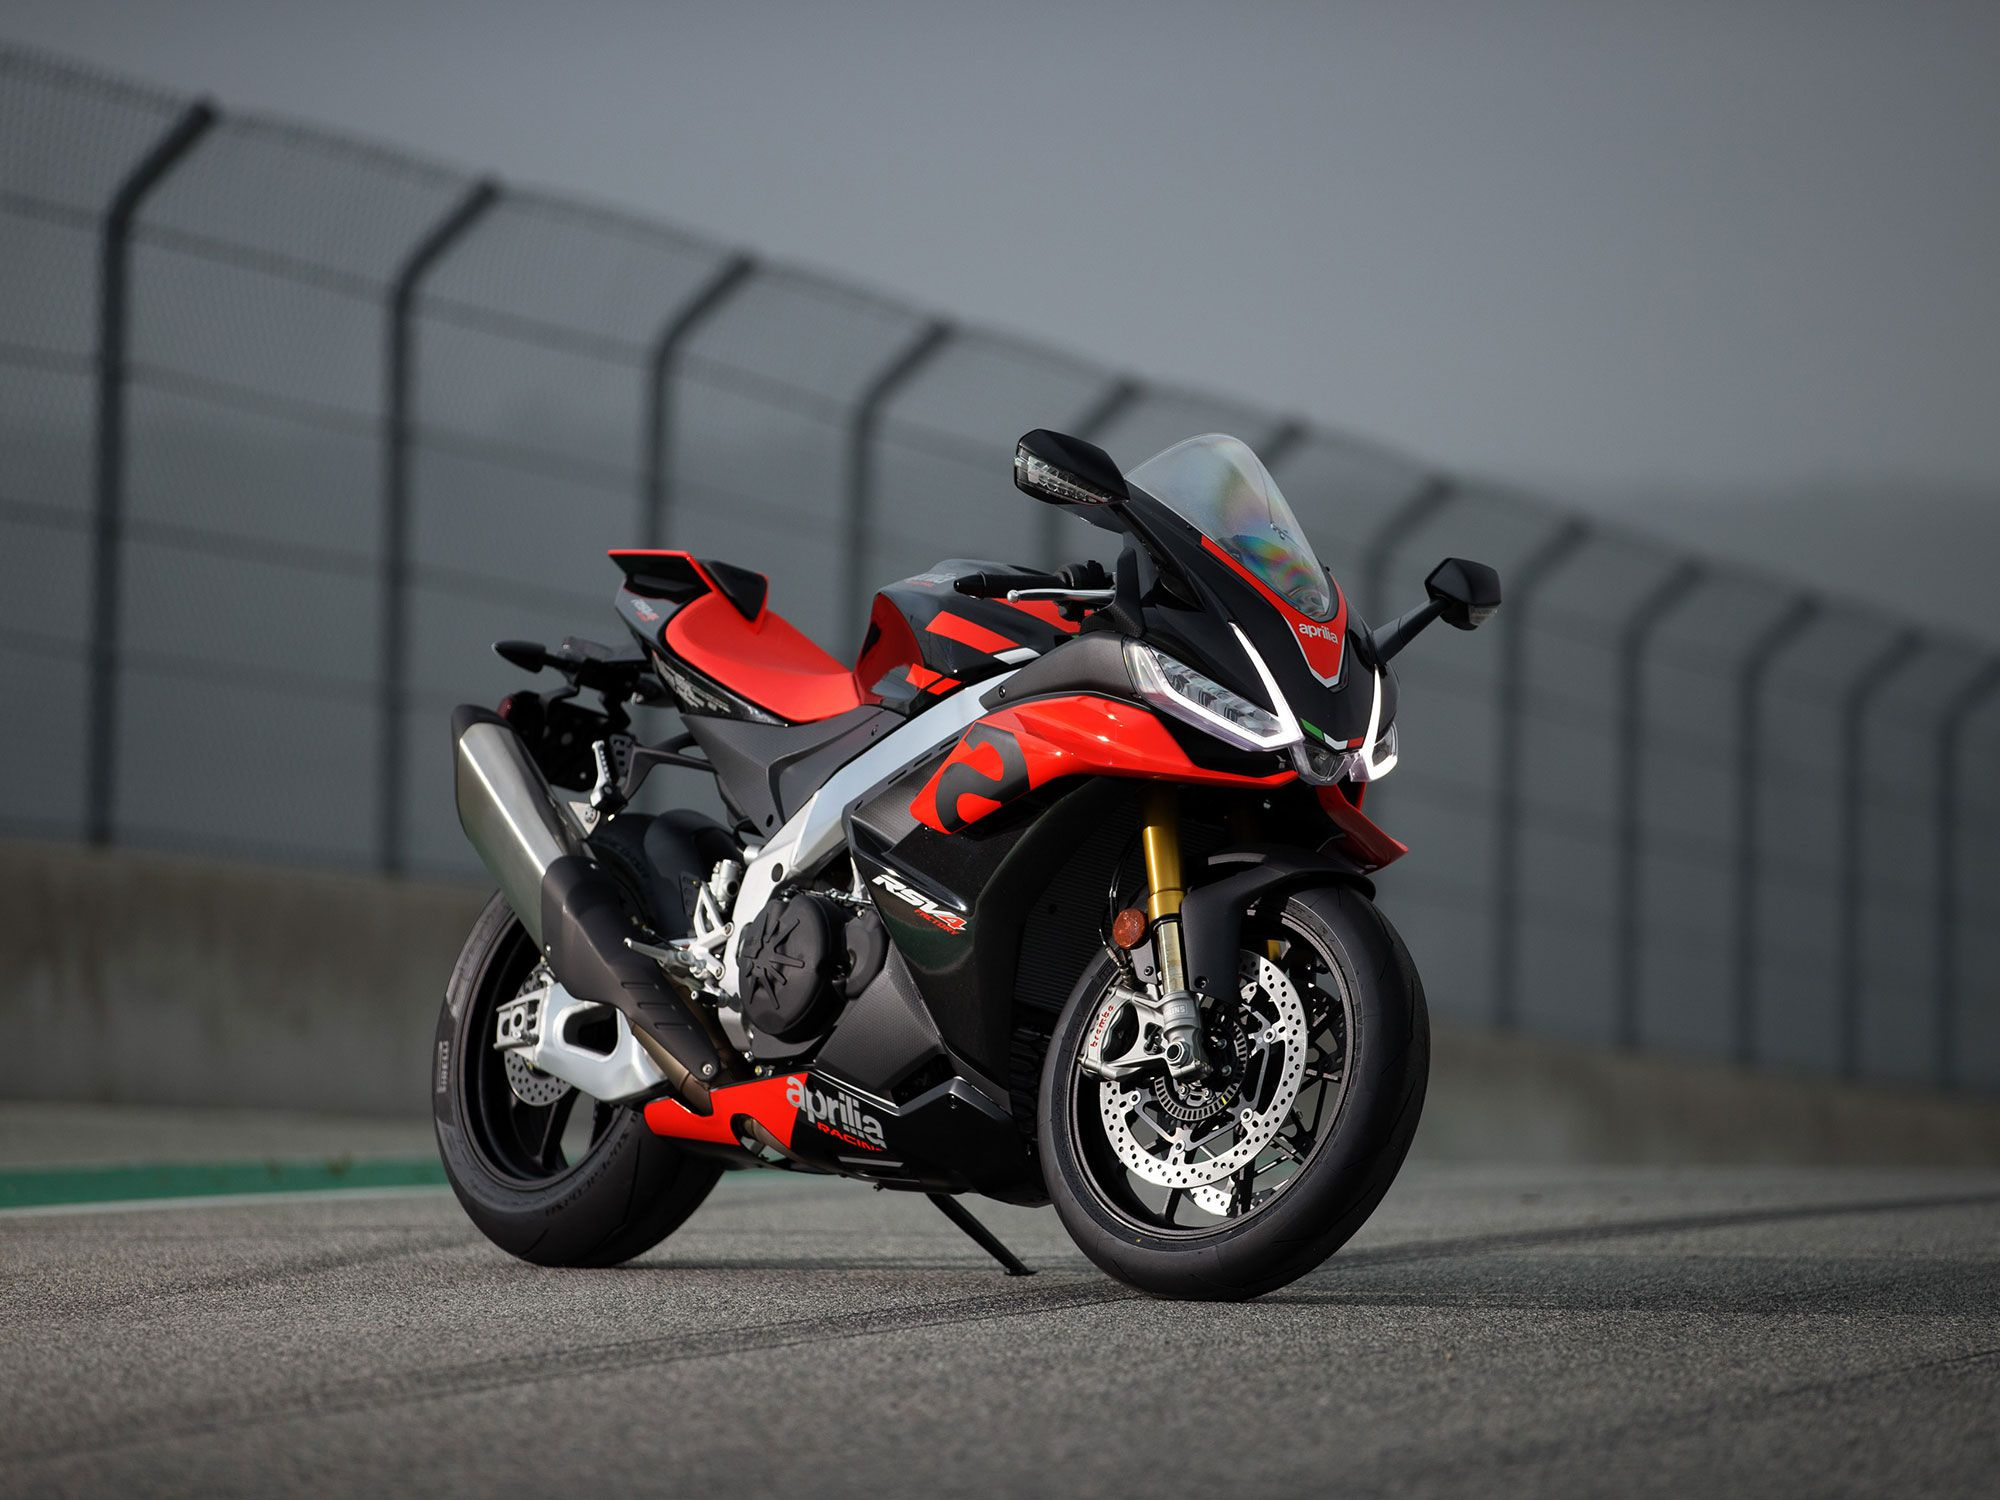 As opposed to radial platform changes, Aprilia engineers methodically hone the performance of its RSV4 Factory superbike. The '21 model features new body panels and LED lighting.